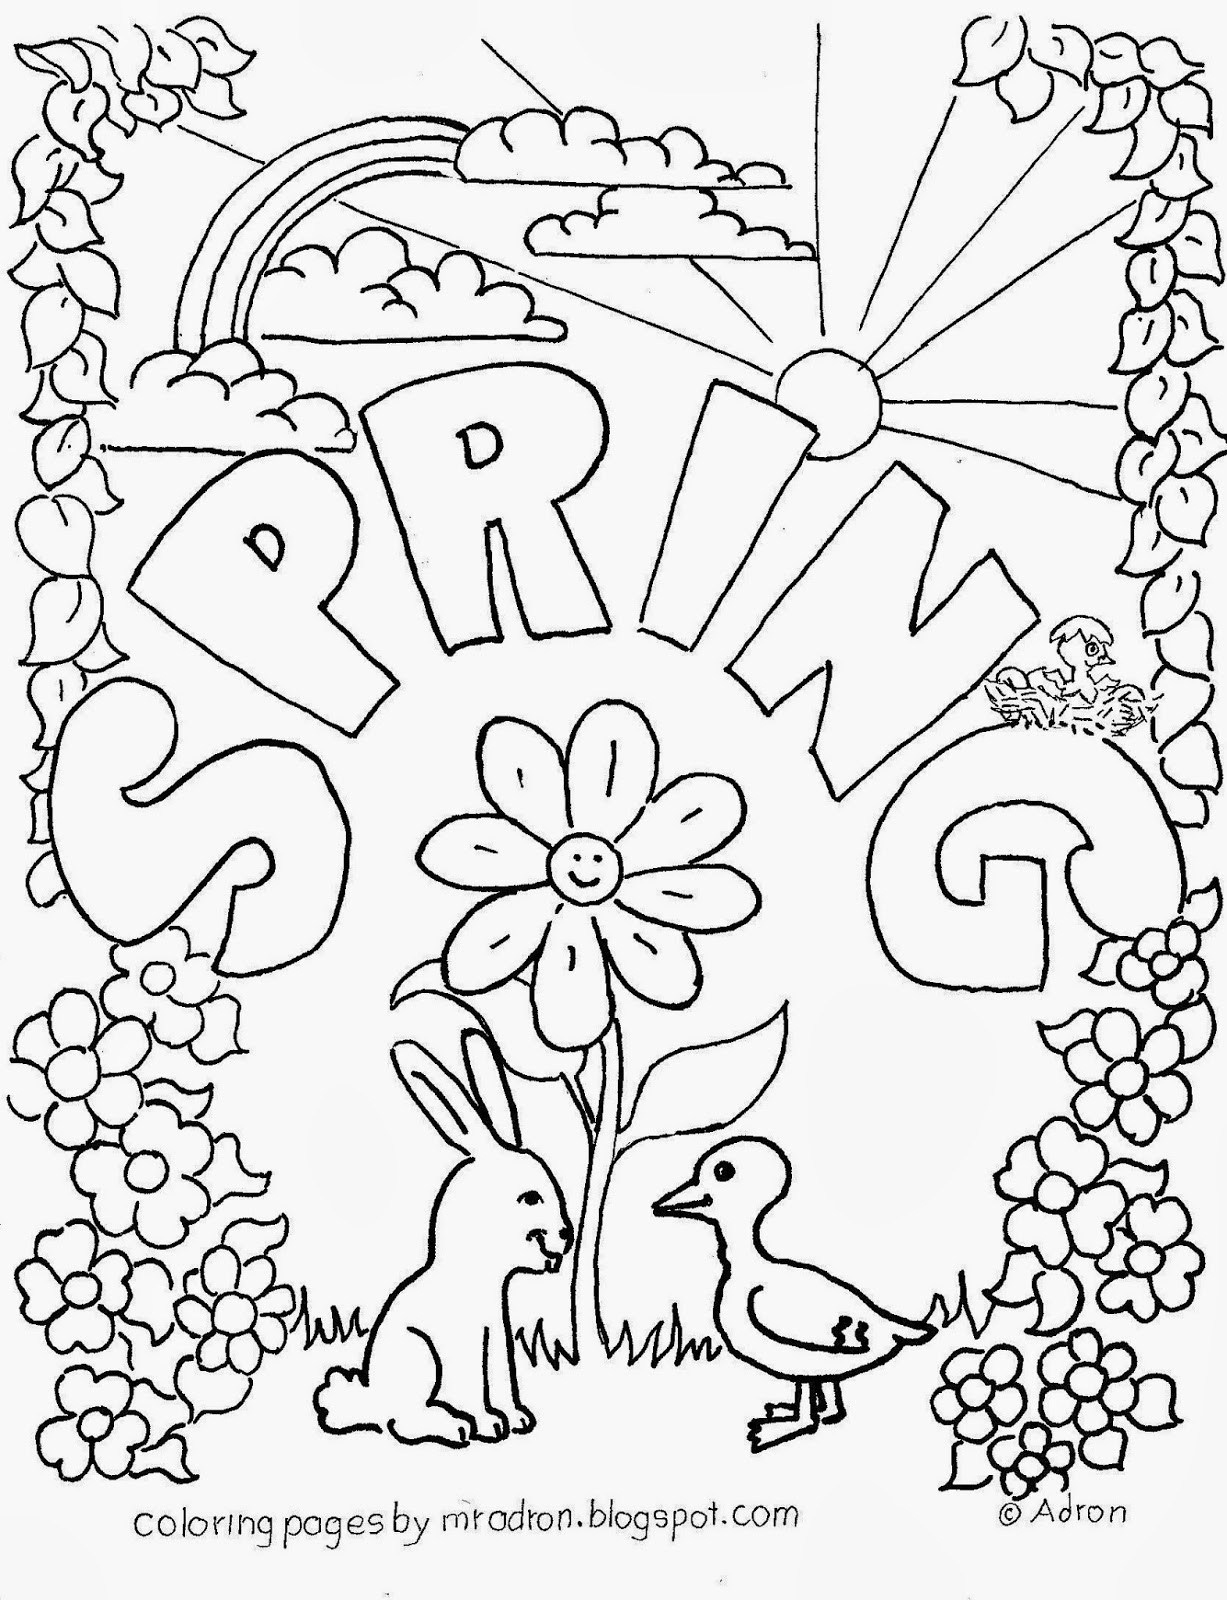 Spring Coloring Pages To Print Agreeable Springtime Coloring Pages - Free Printable Spring Coloring Pages